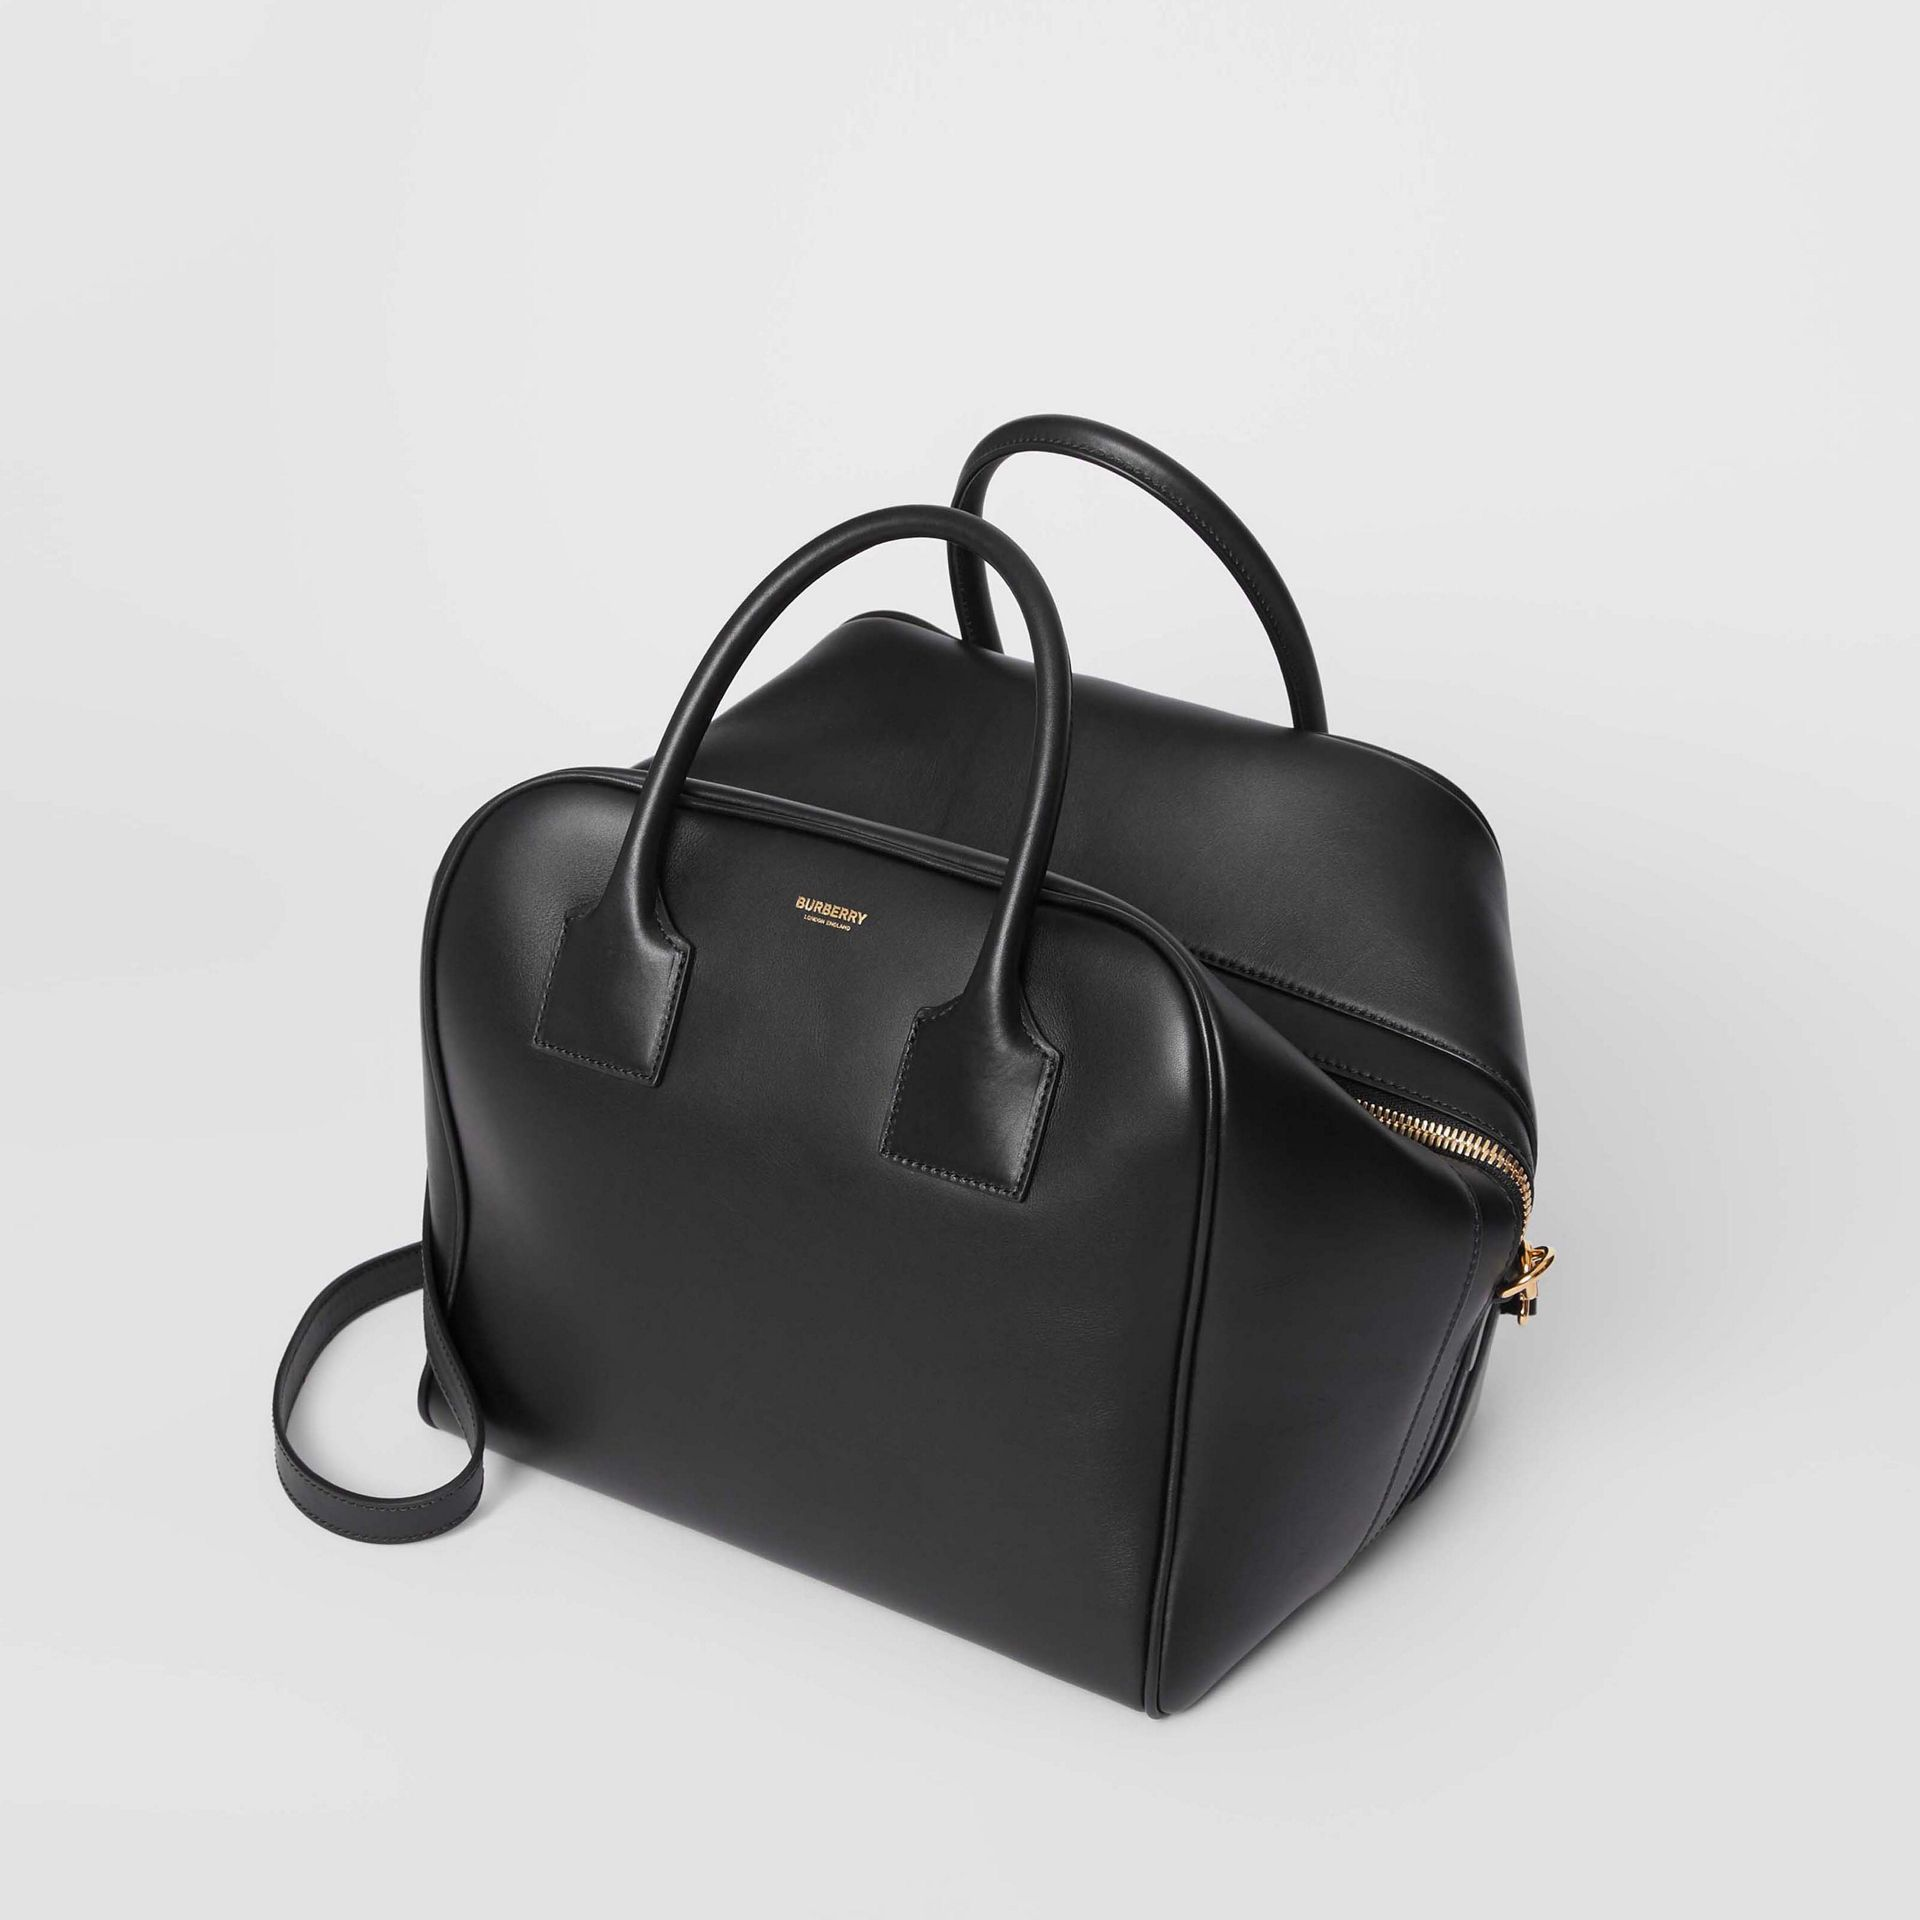 Medium Leather Cube Bag in Black - Women | Burberry Canada - gallery image 3